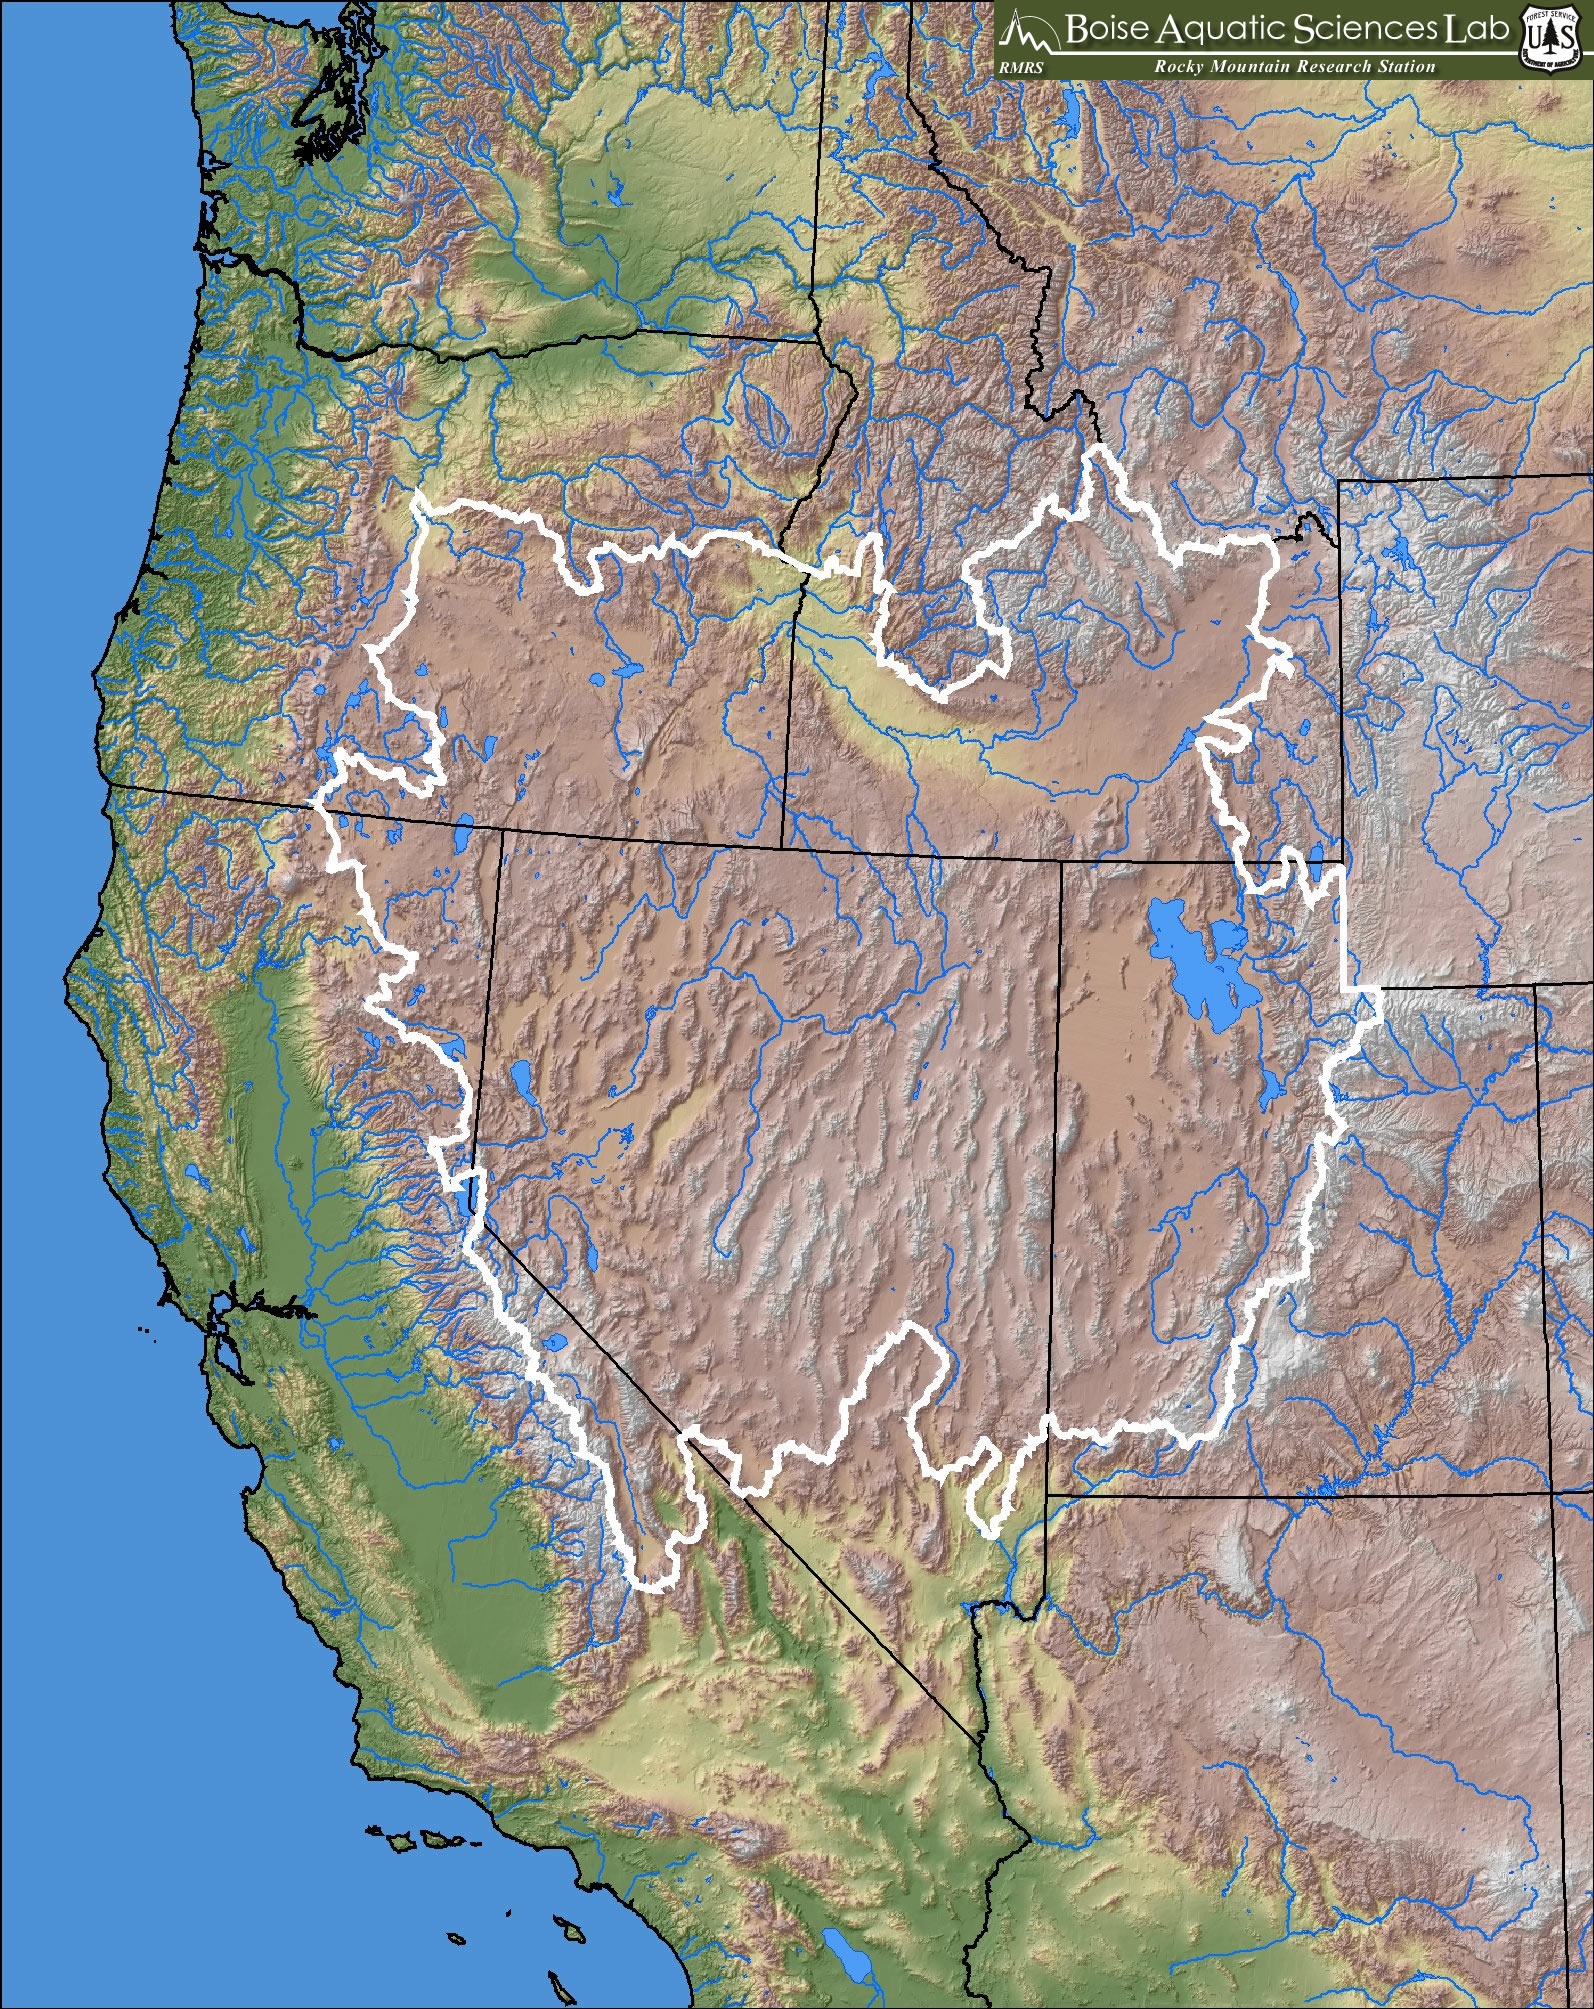 Great Basin Map Color Shaded Relief Map For The Great Basin Includes States Rivers And Lakes Derived From 120 M Dem Data